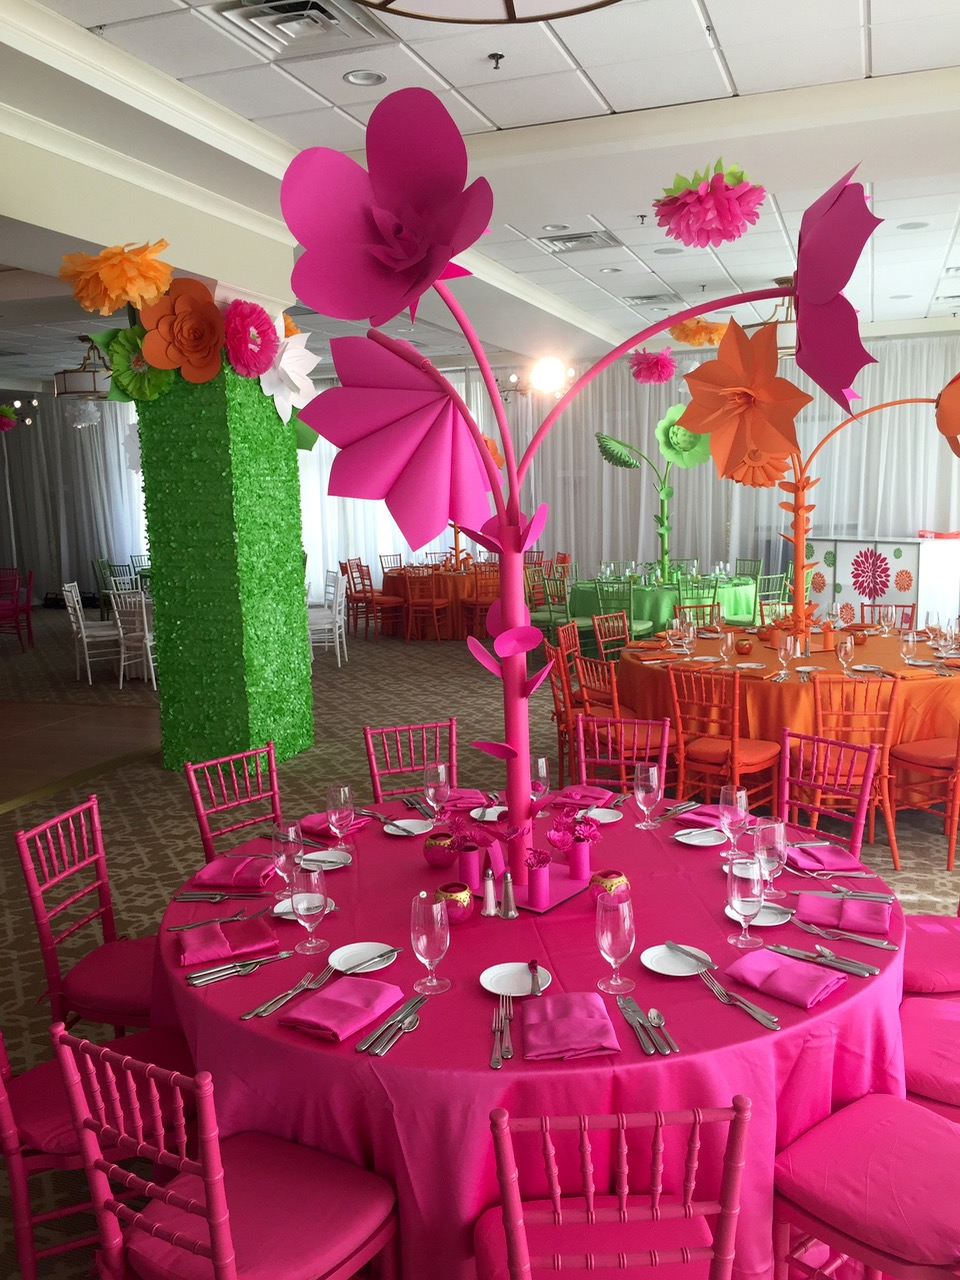 Paper+Flower+Centerpiece+Pink+Orange+Green+Color+Scheme+Bat+Mitzvah+Decor+Crestmont+Country+Club+-+Eggsotic+Events+NJ+NYC+Event+Design+Custom+Decor++-+1.jpg